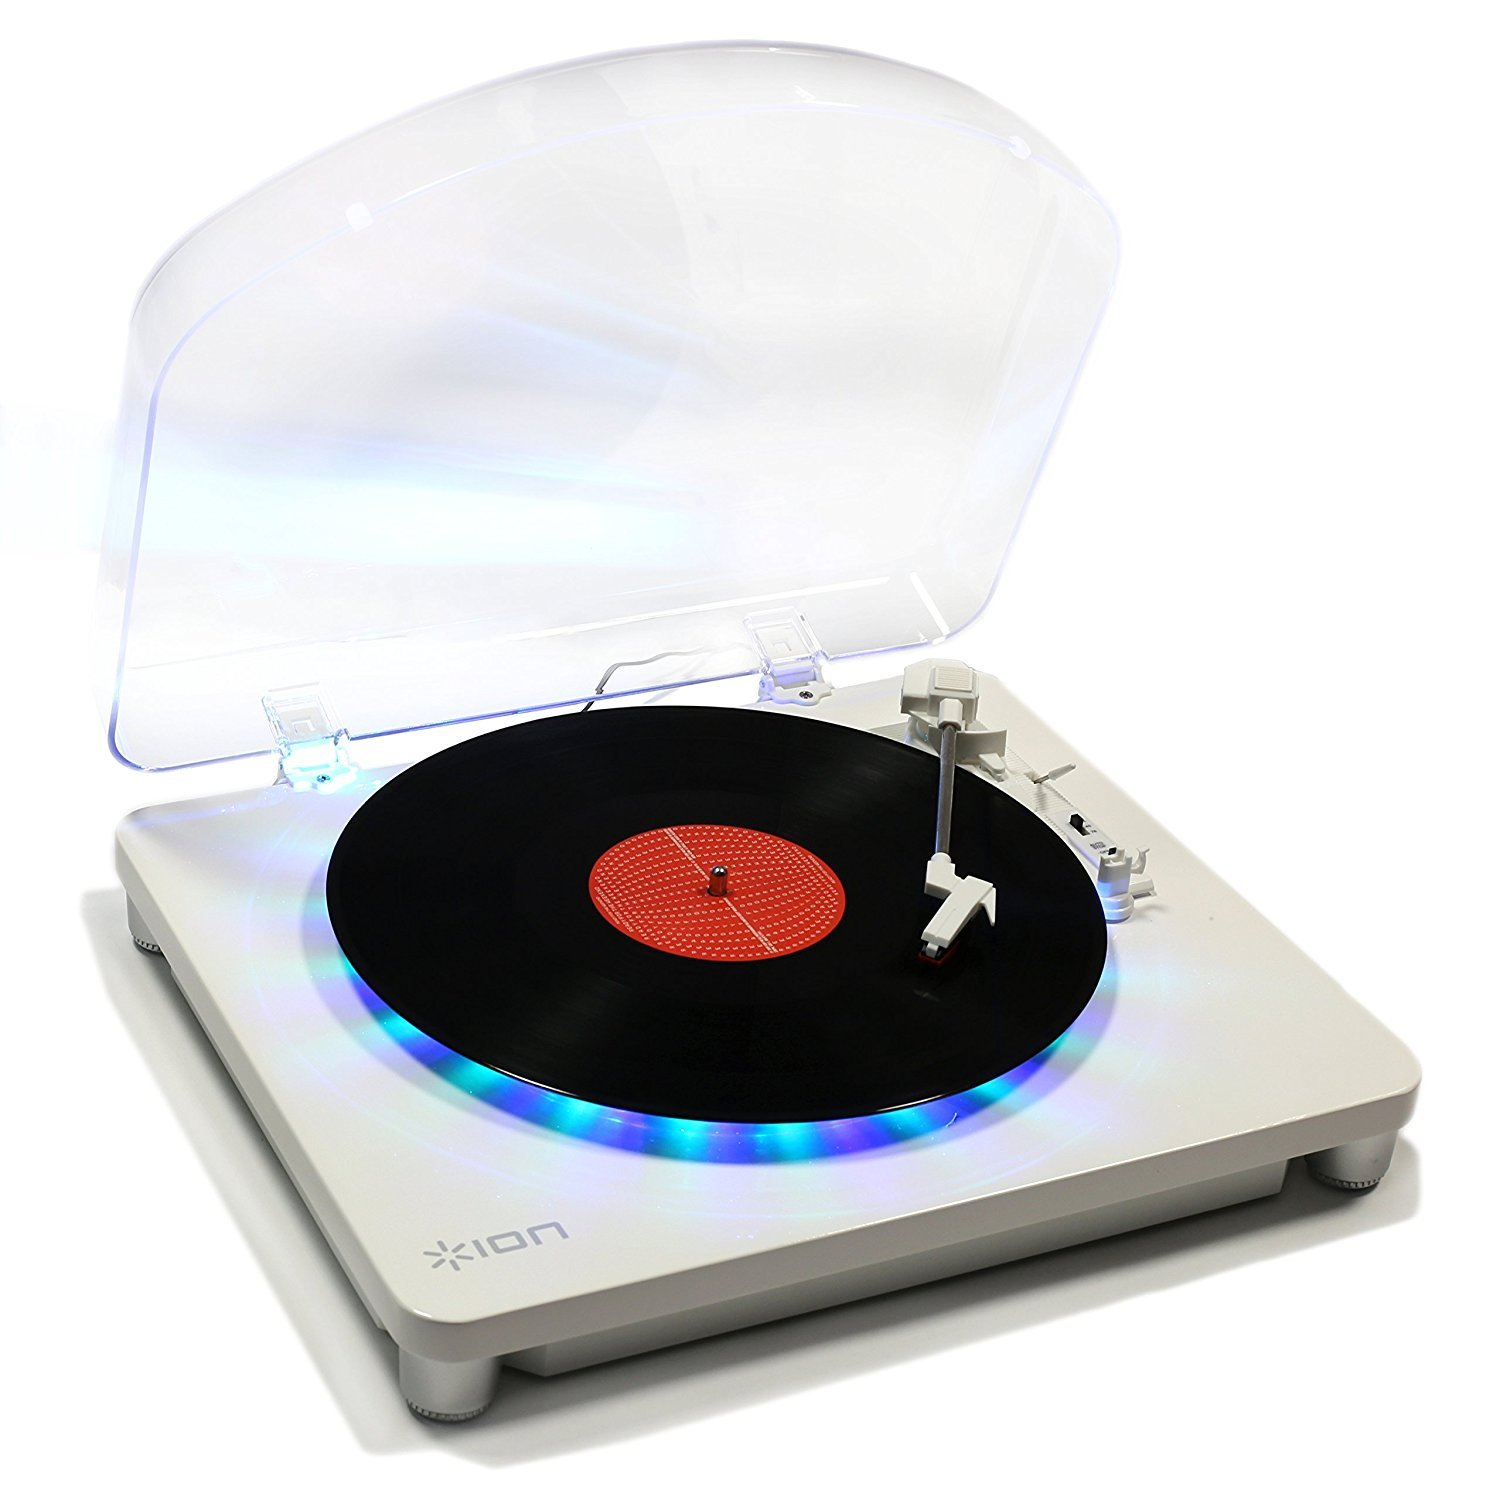 Portable Record Player, Ion Audio Photon Modern Vinyl Portable Turntable Player